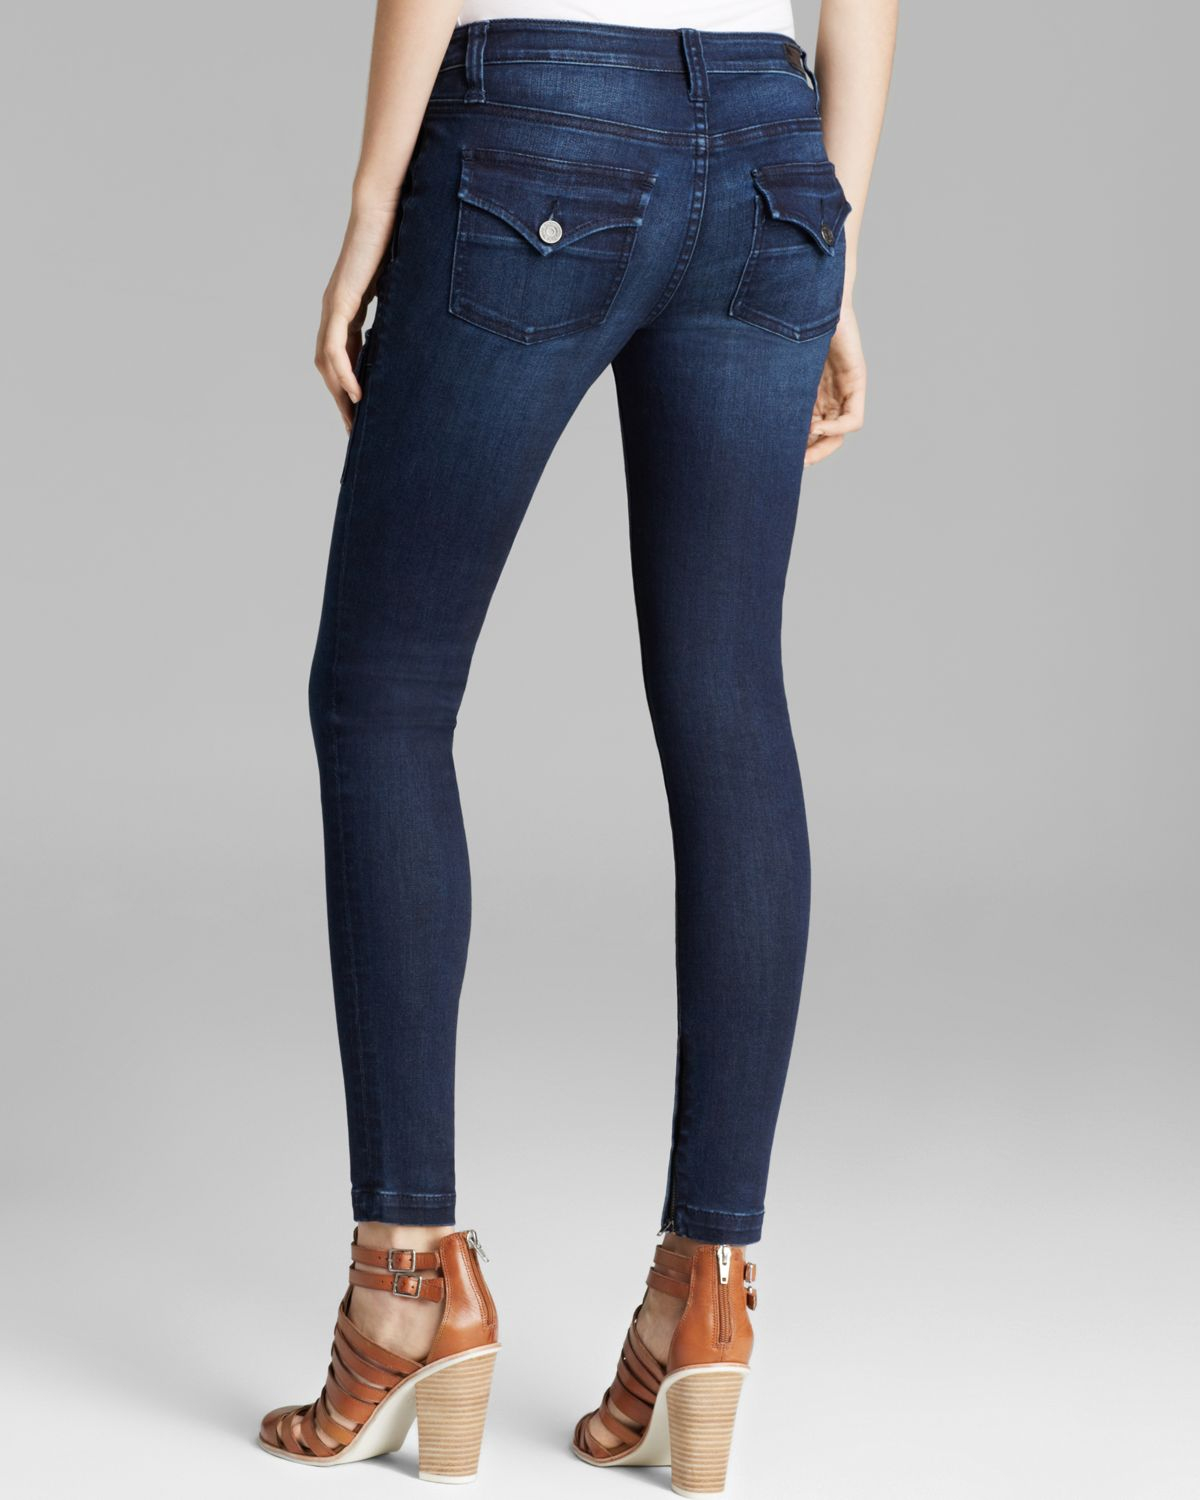 Real Skinny Jeans - Xtellar Jeans